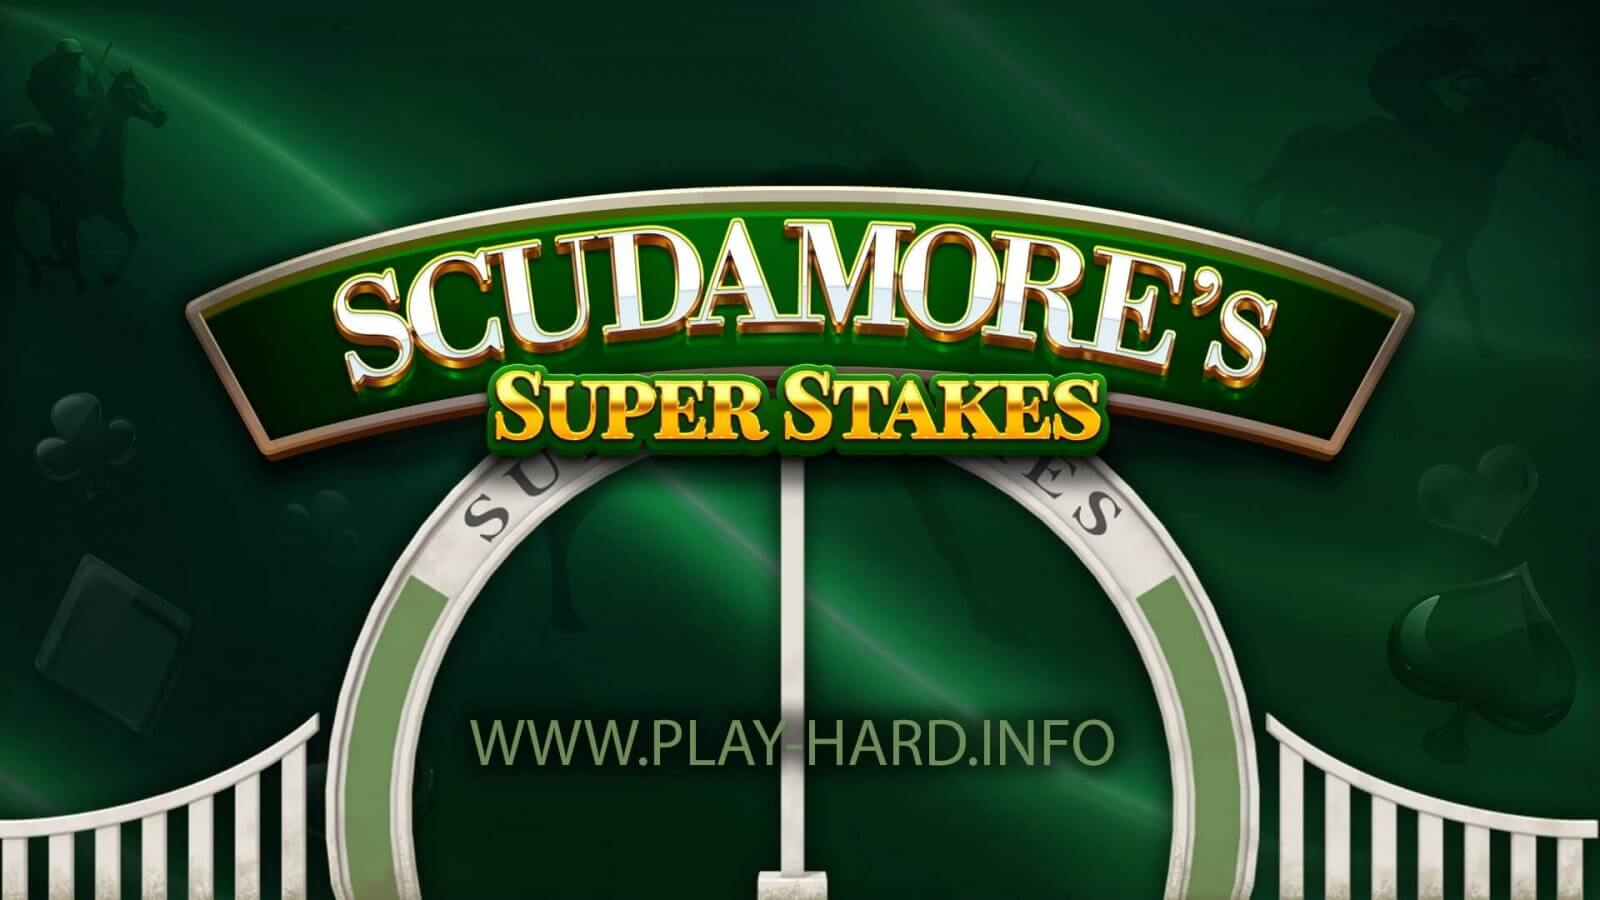 Scudamore's Super Stakes from NetEnt